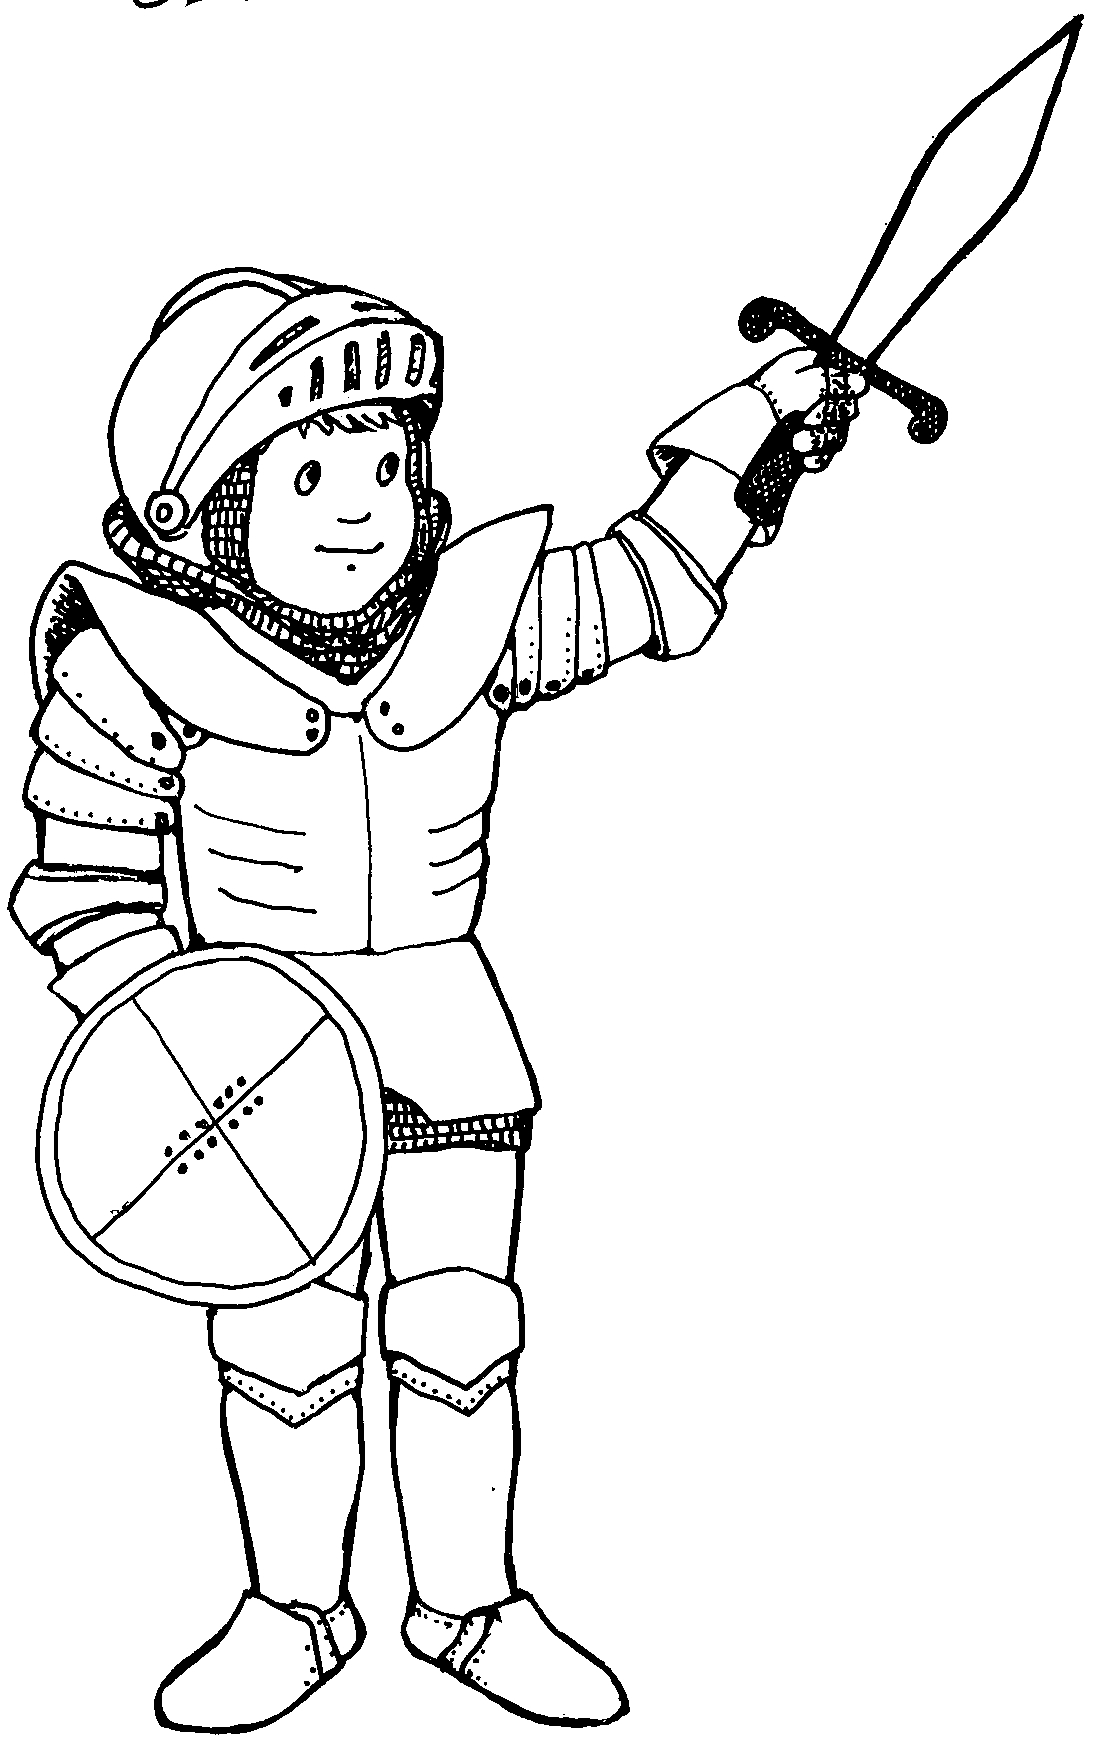 Peasant clipart black and white svg royalty free download Free Knight Cliparts, Download Free Clip Art, Free Clip Art on ... svg royalty free download